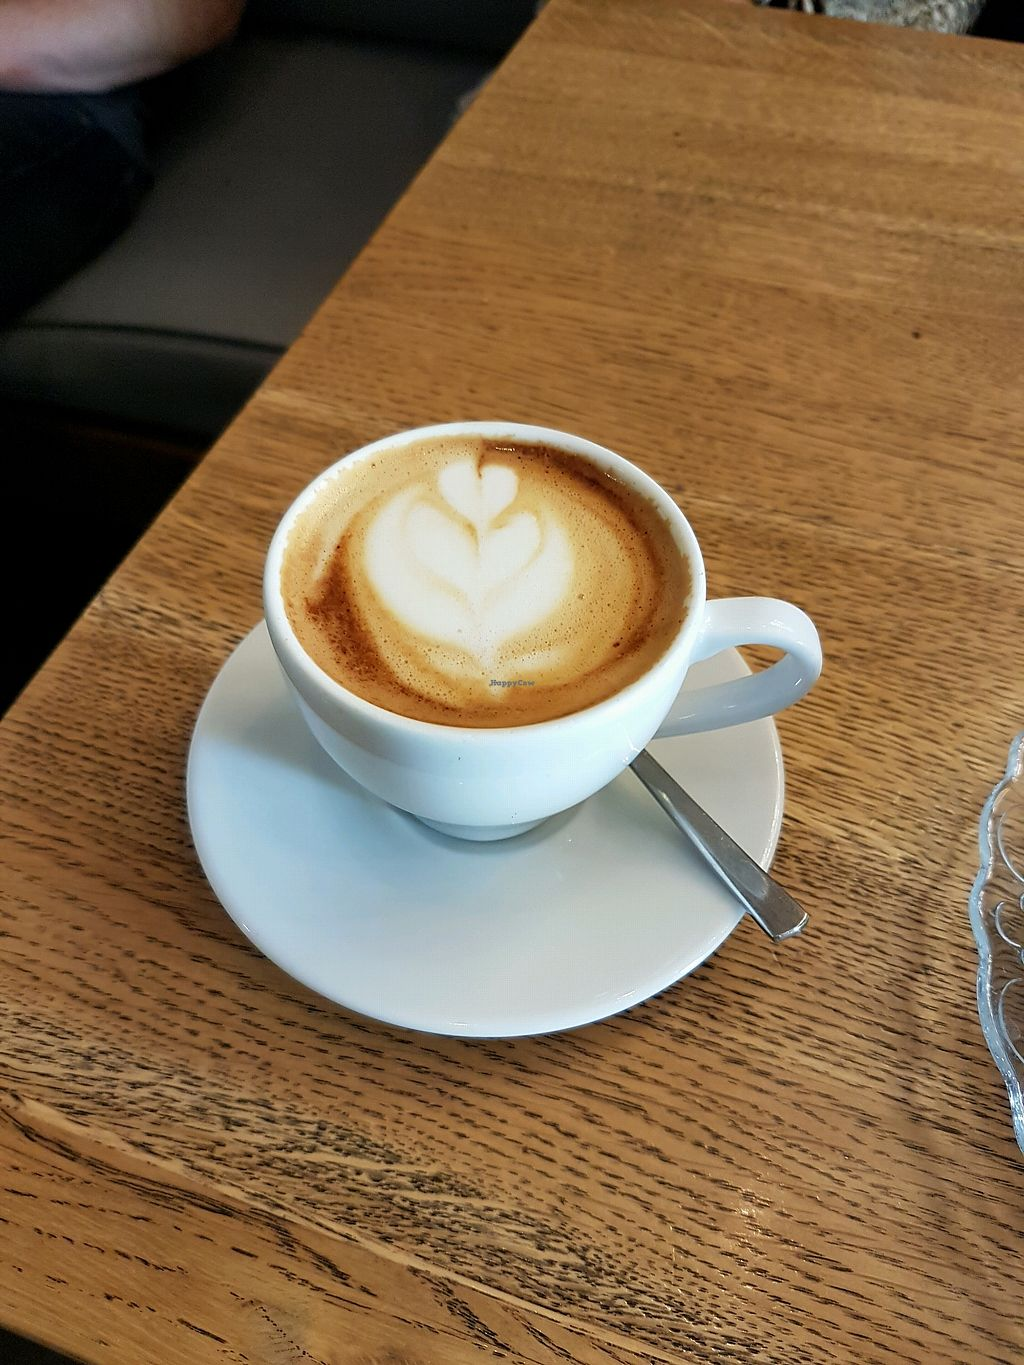 "Photo of Wesola Cafe  by <a href=""/members/profile/PerrySwift"">PerrySwift</a> <br/>Oat milk flat white <br/> April 21, 2018  - <a href='/contact/abuse/image/66343/388941'>Report</a>"